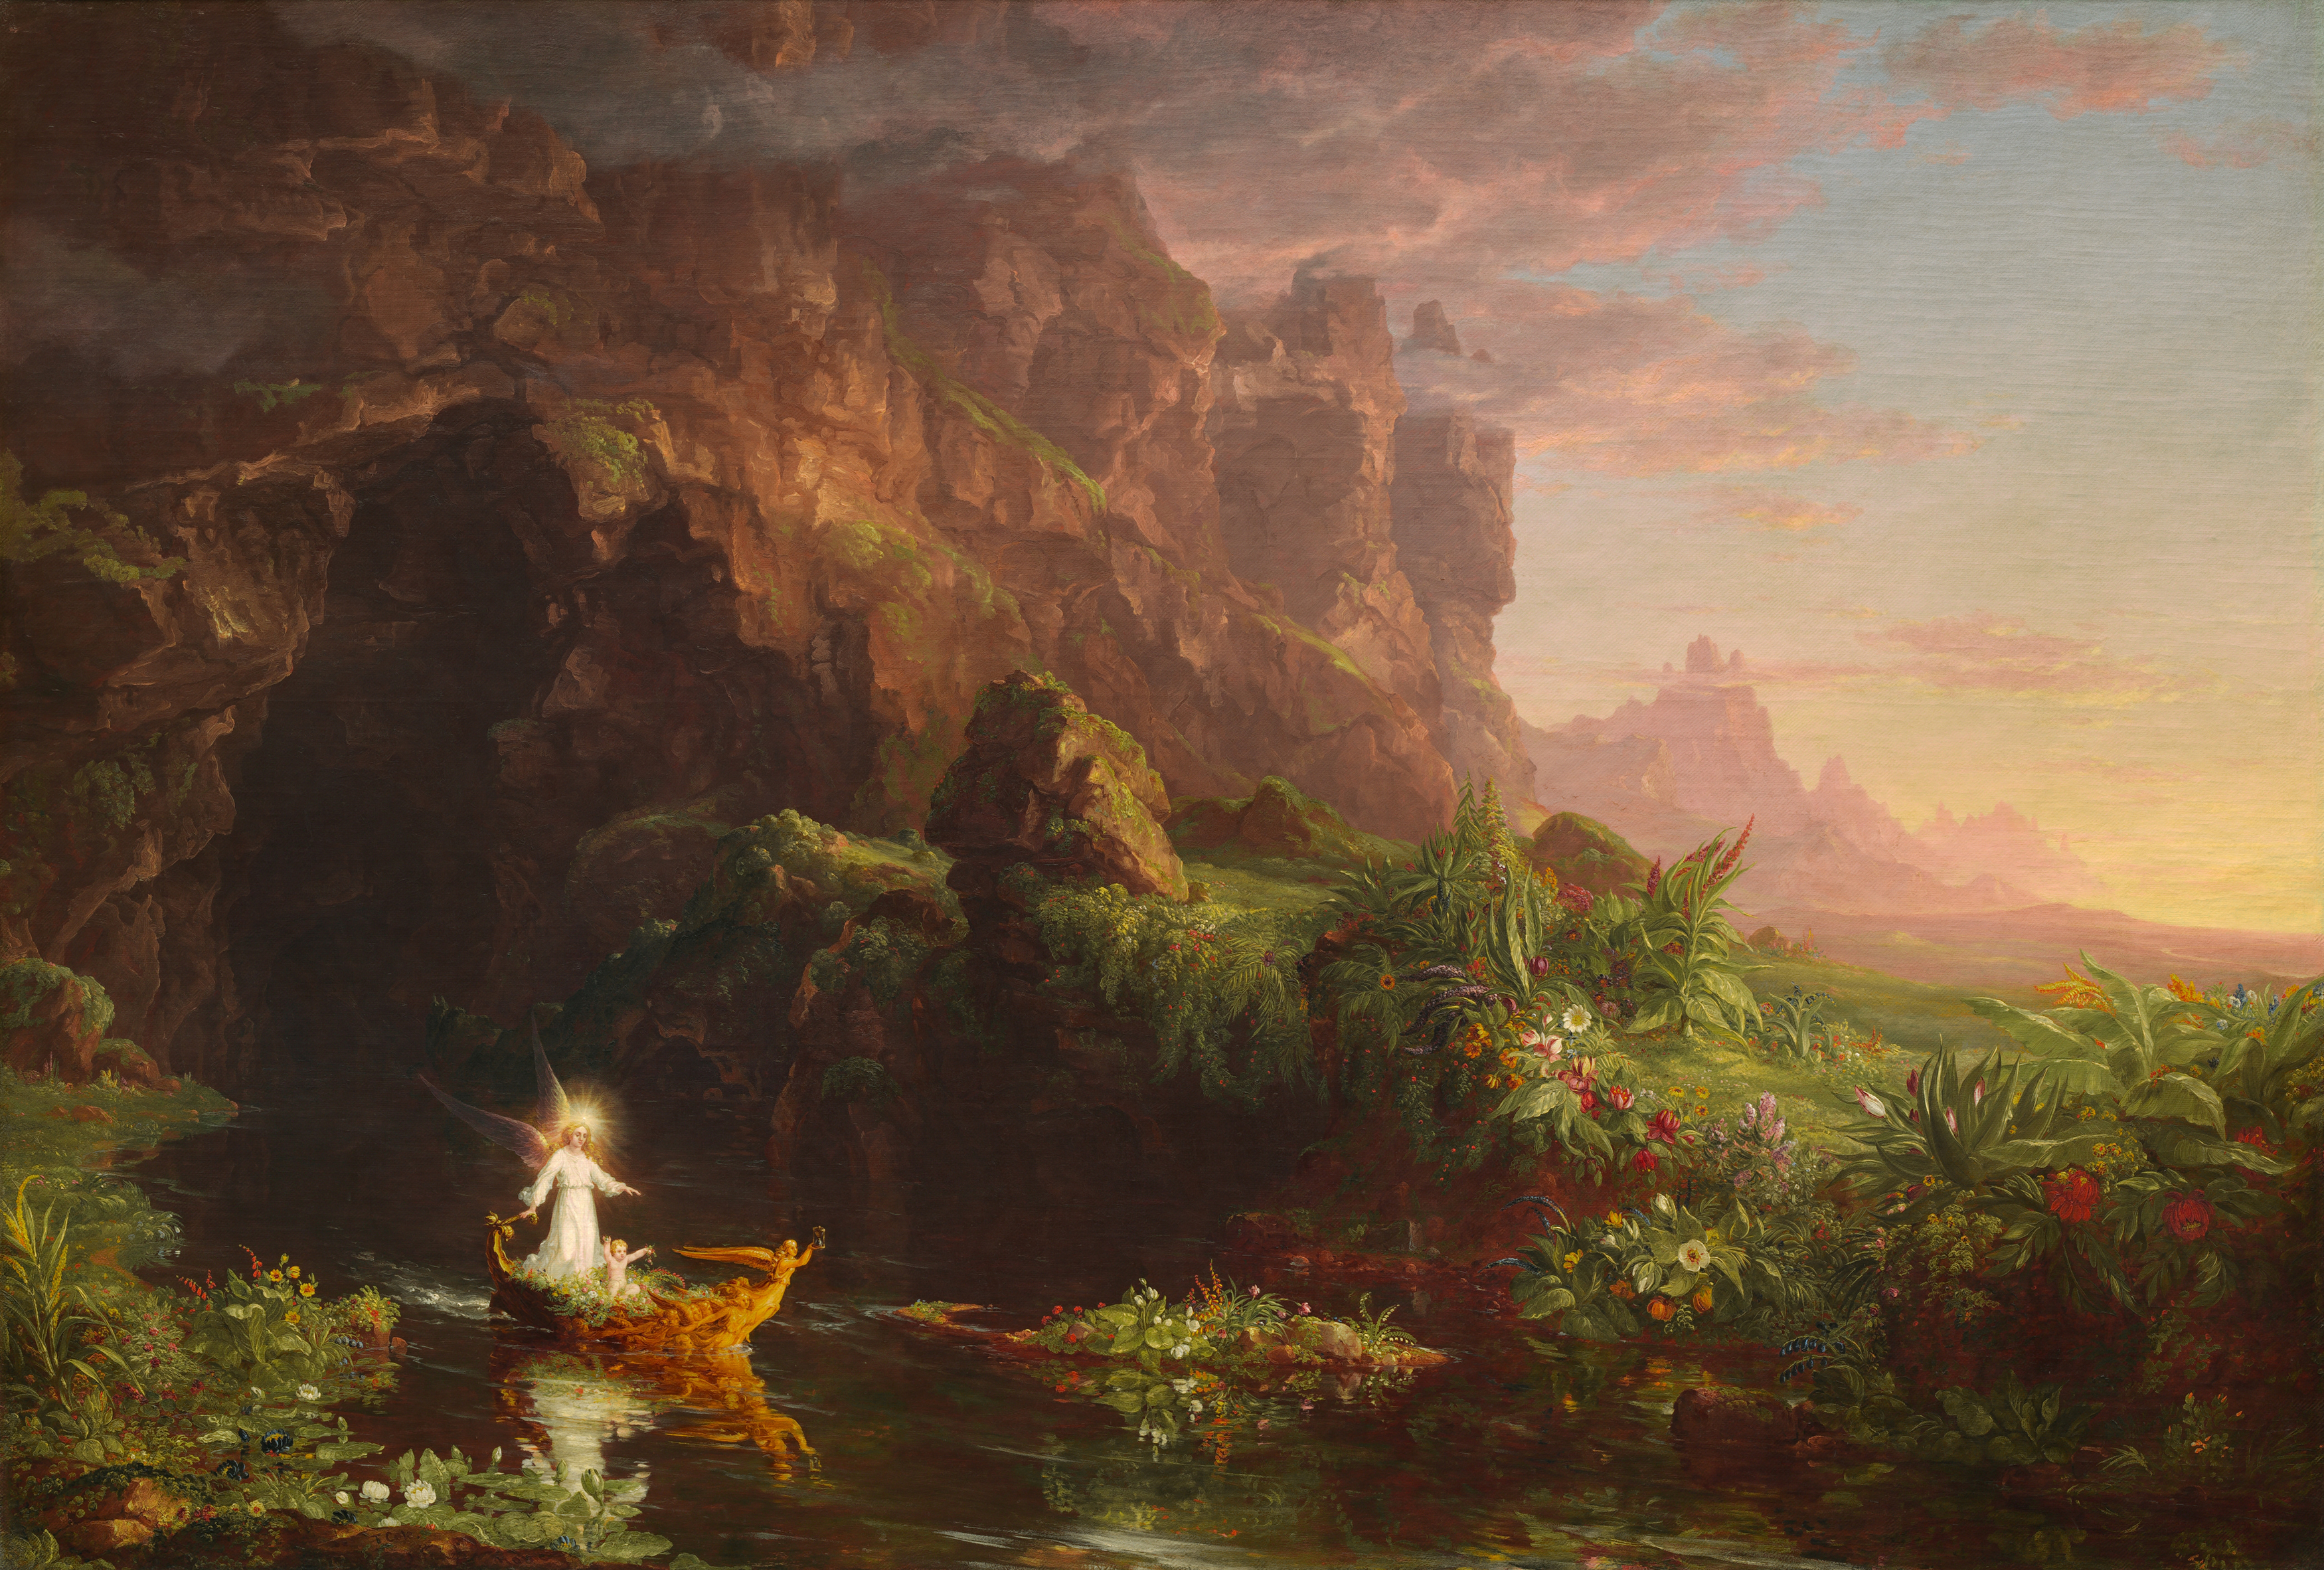 The Voyage of Life: Childhood, 1842 — Thomas Cole